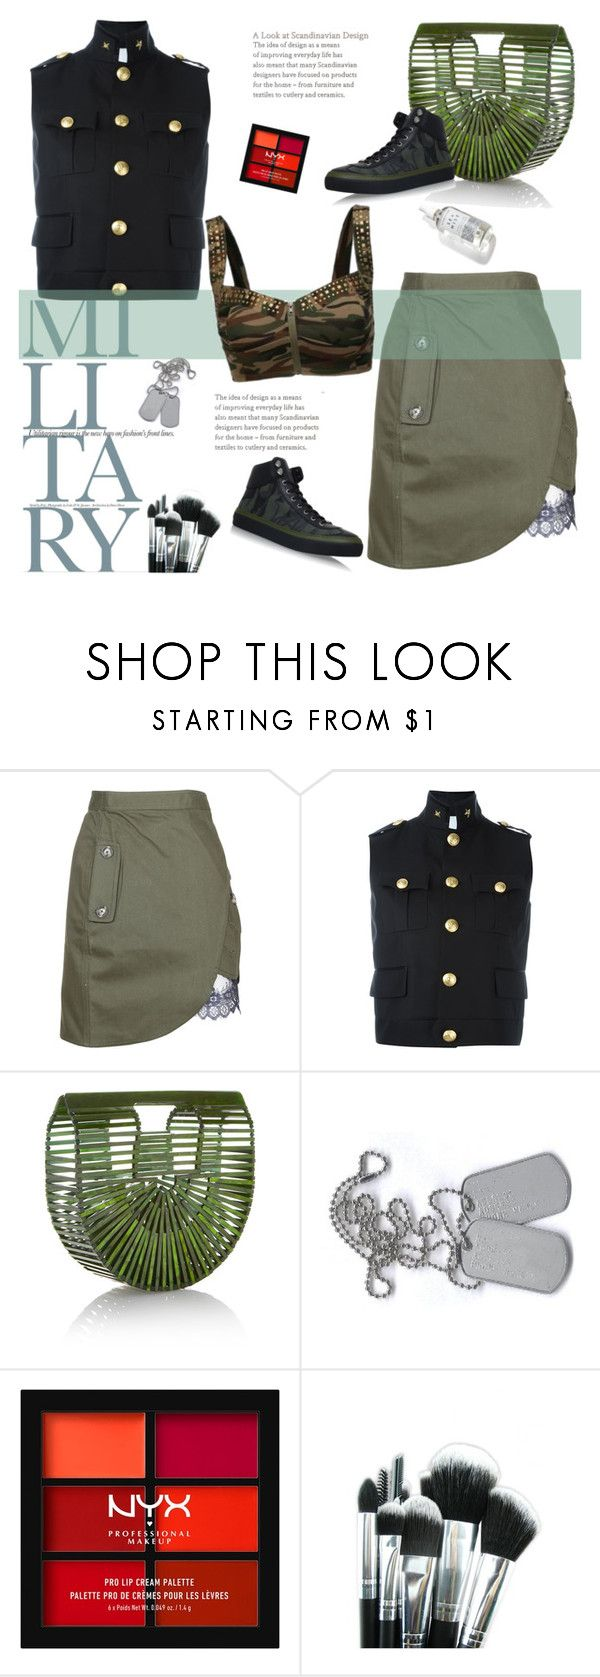 """""""Untitled #328"""" by craftsperson ❤ liked on Polyvore featuring self-portrait, Dsquared2, Cult Gaia, NYX, Jimmy Choo and prettyunderpinnings"""